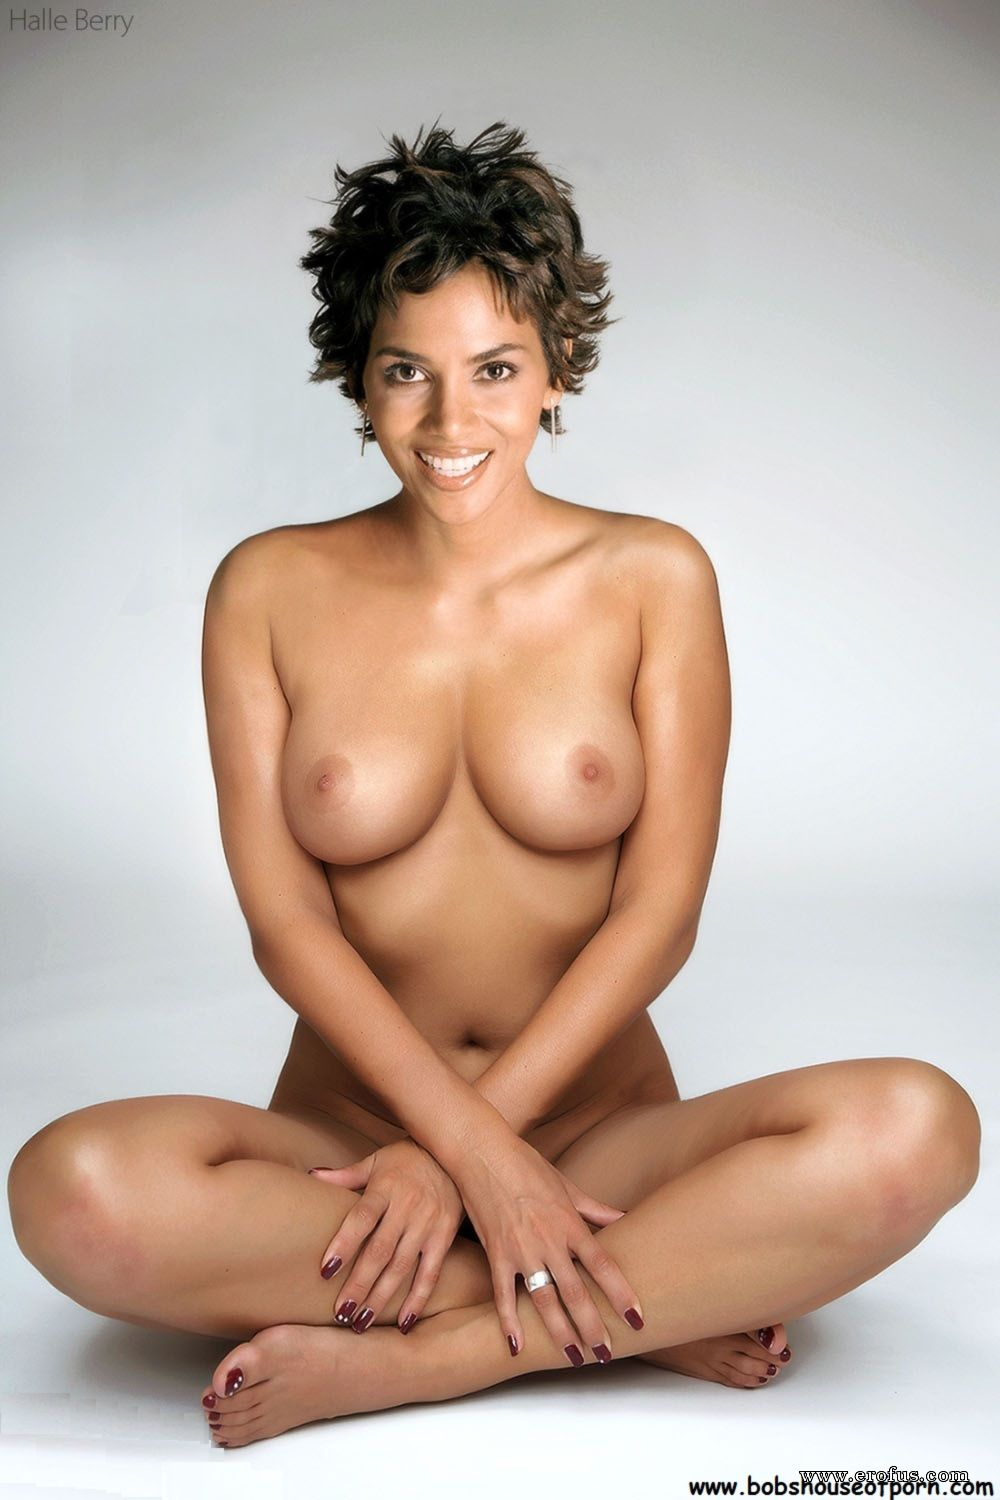 Free naked pictures of halle berry — pic 5